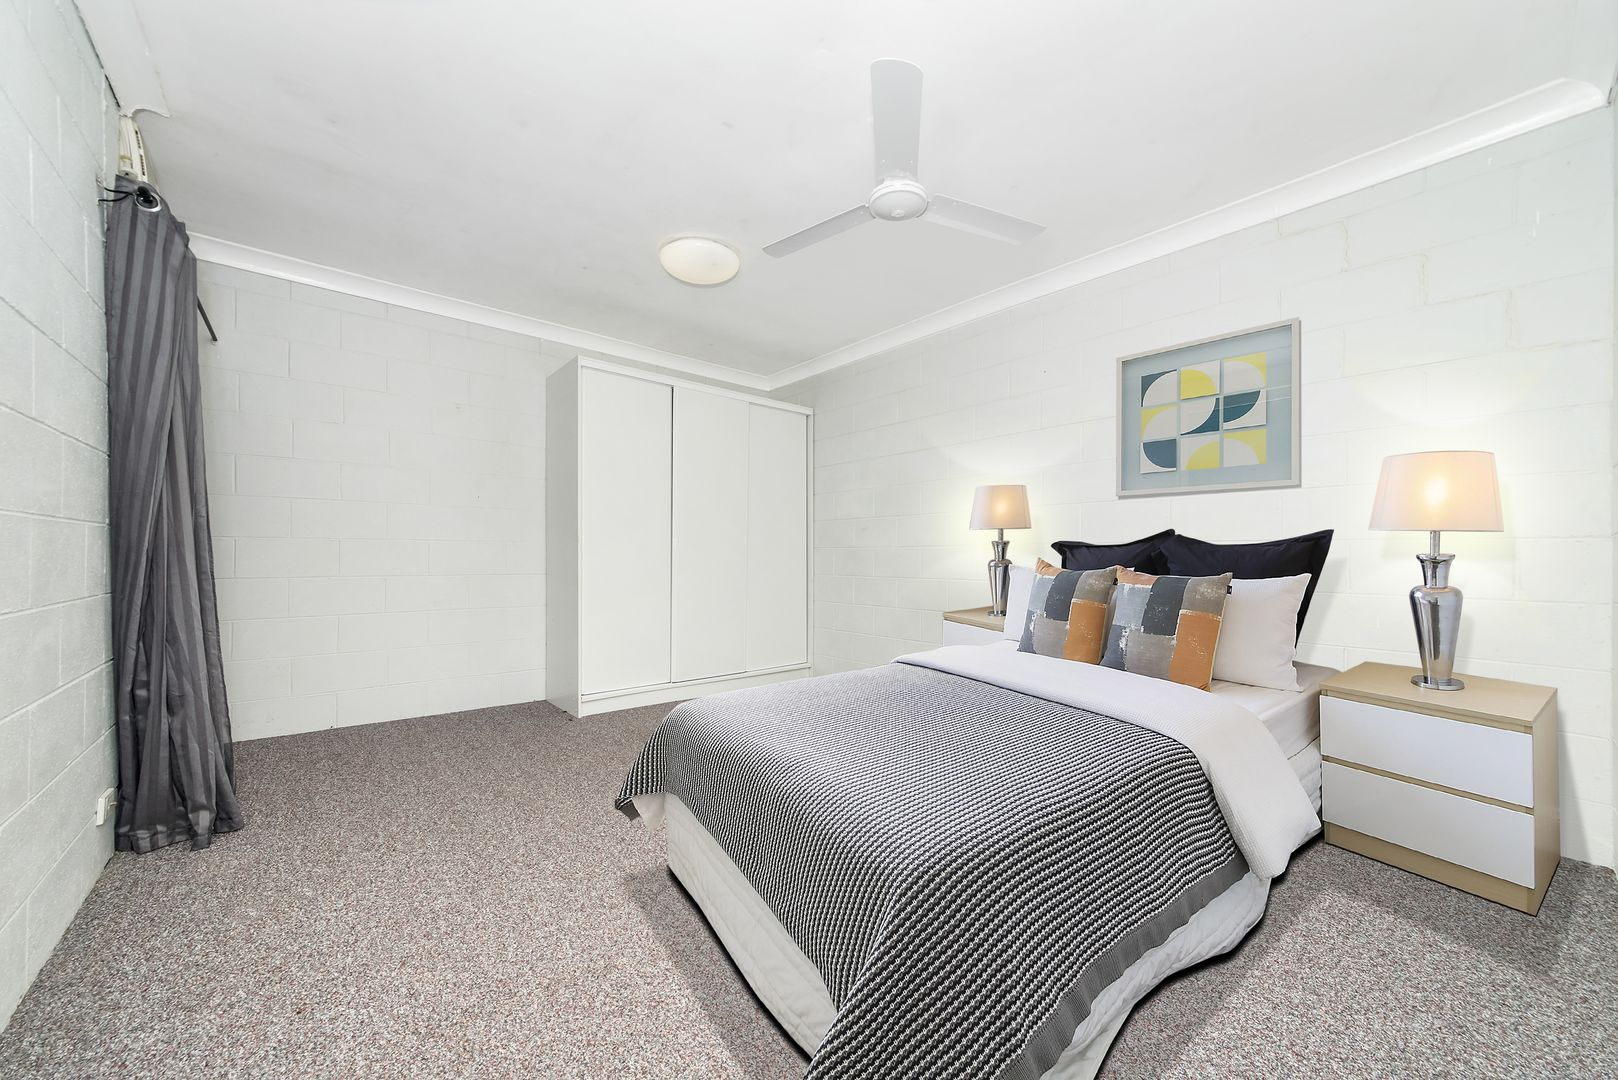 3/6 Adams Street, Heatley QLD 4814, Image 2